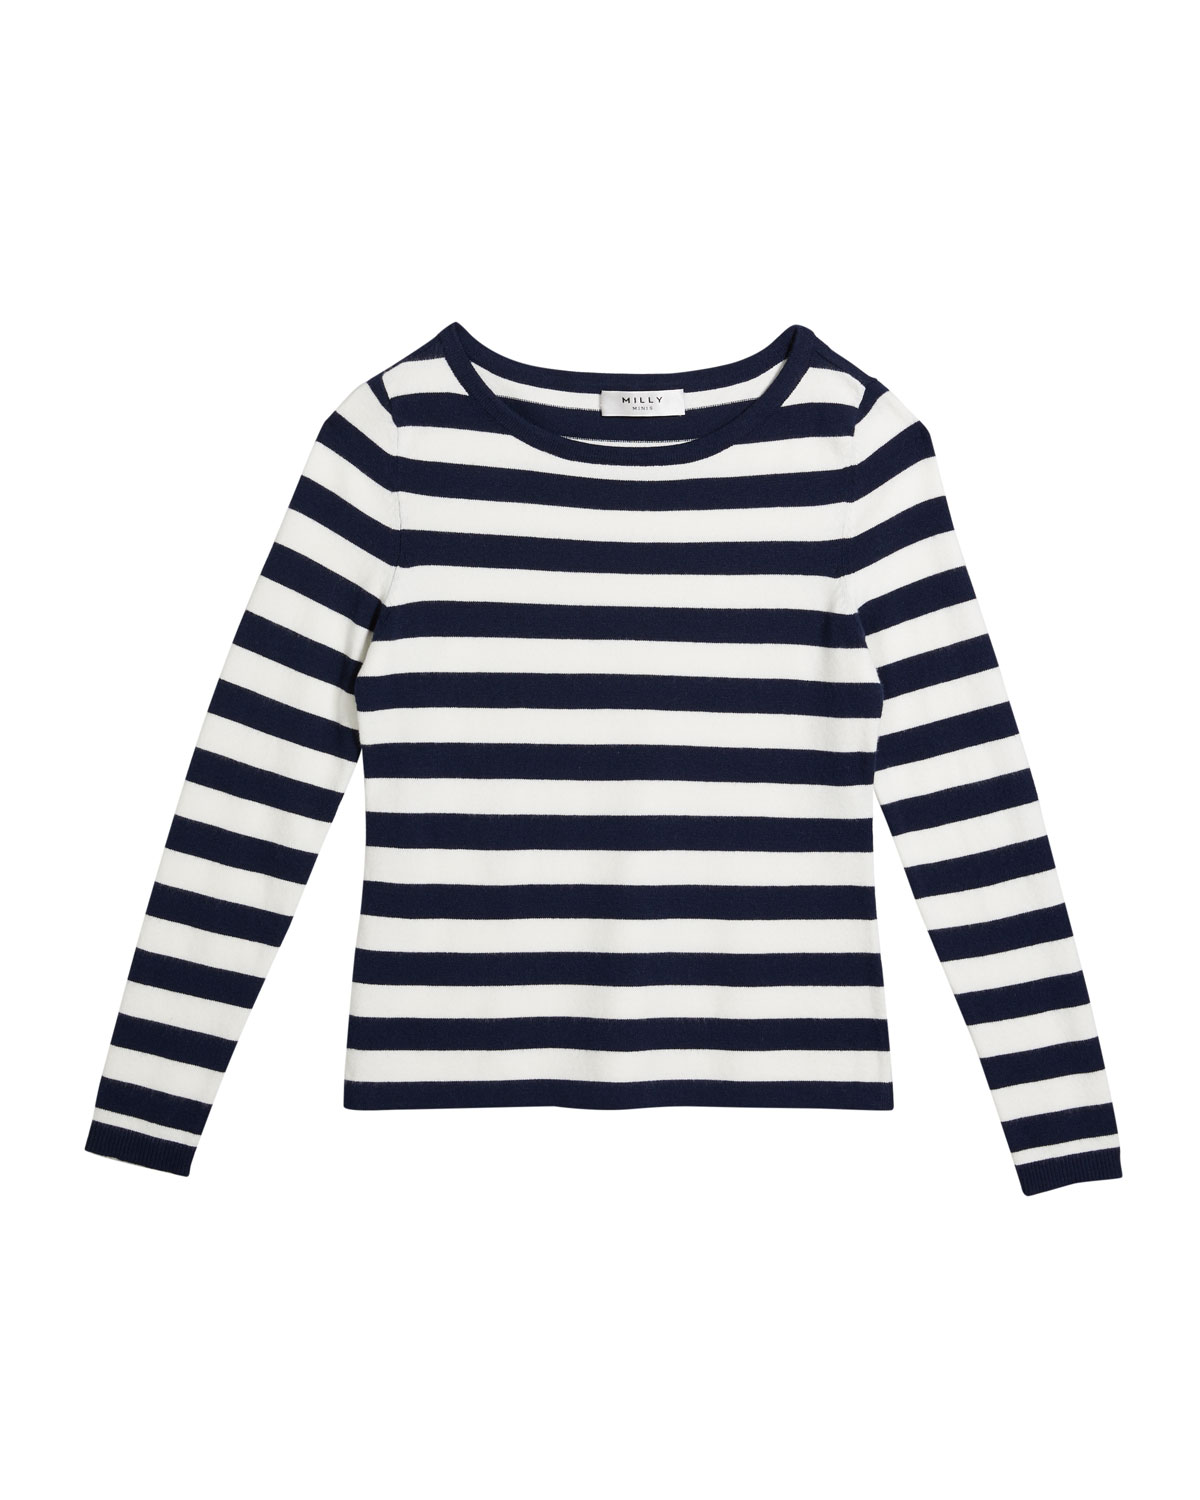 Milly Minis Girl's Striped Boat-Neck Long-Sleeve Top, Size 10-16